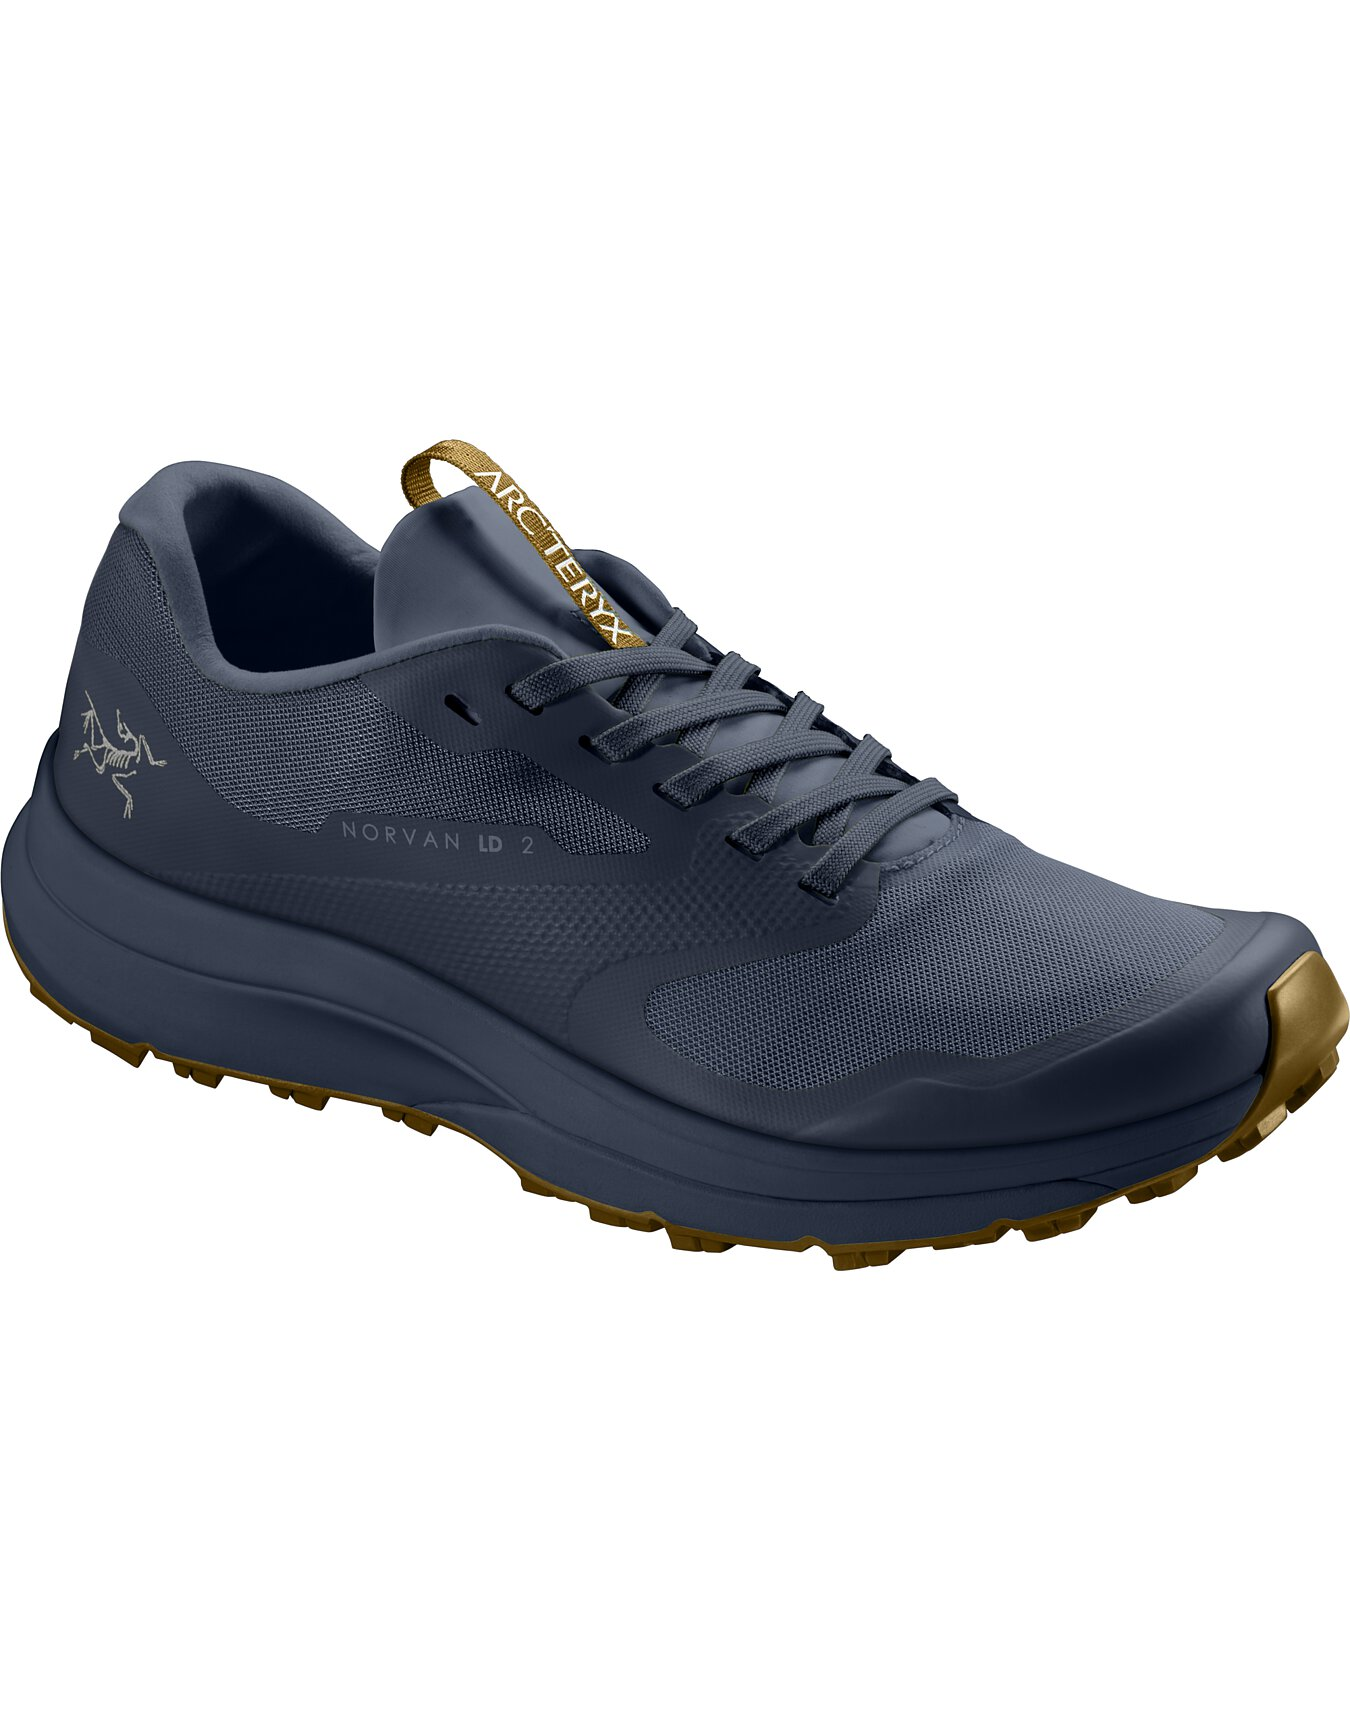 Norvan LD 2 Shoe Men's